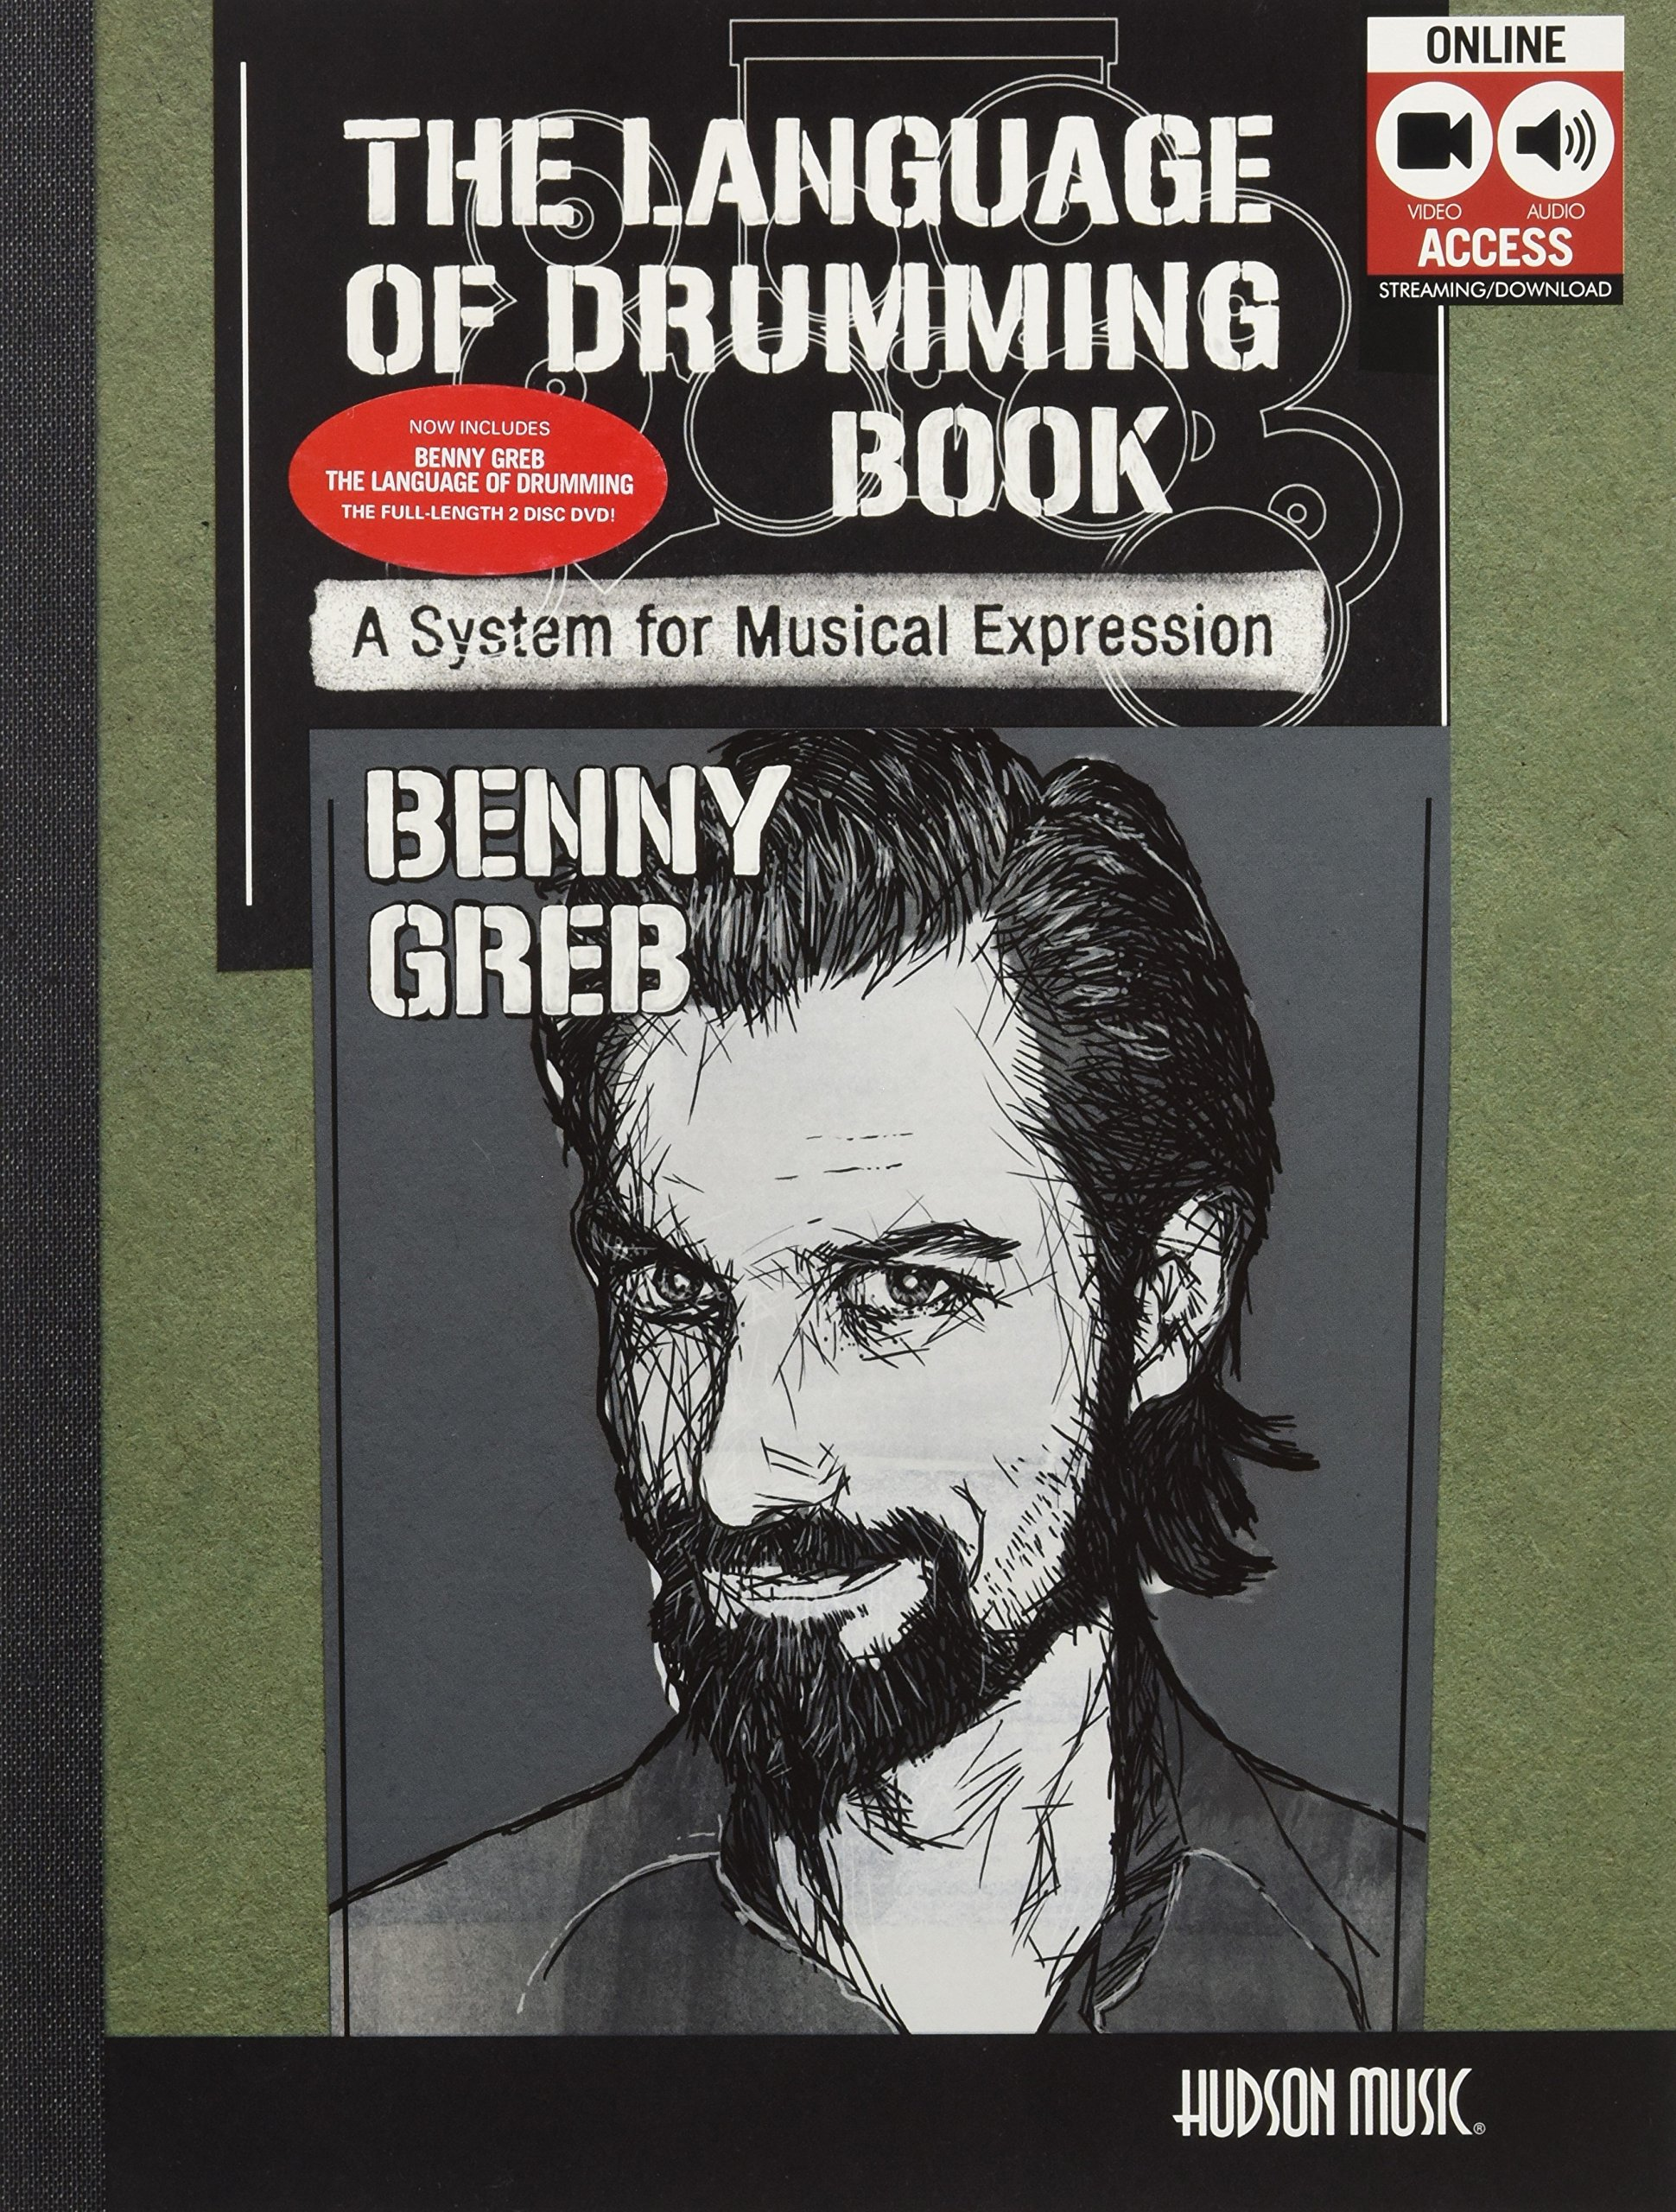 Benny Greb - The Language of Drumming: Includes Online Audio & 2-Hour Video by Hudson Music